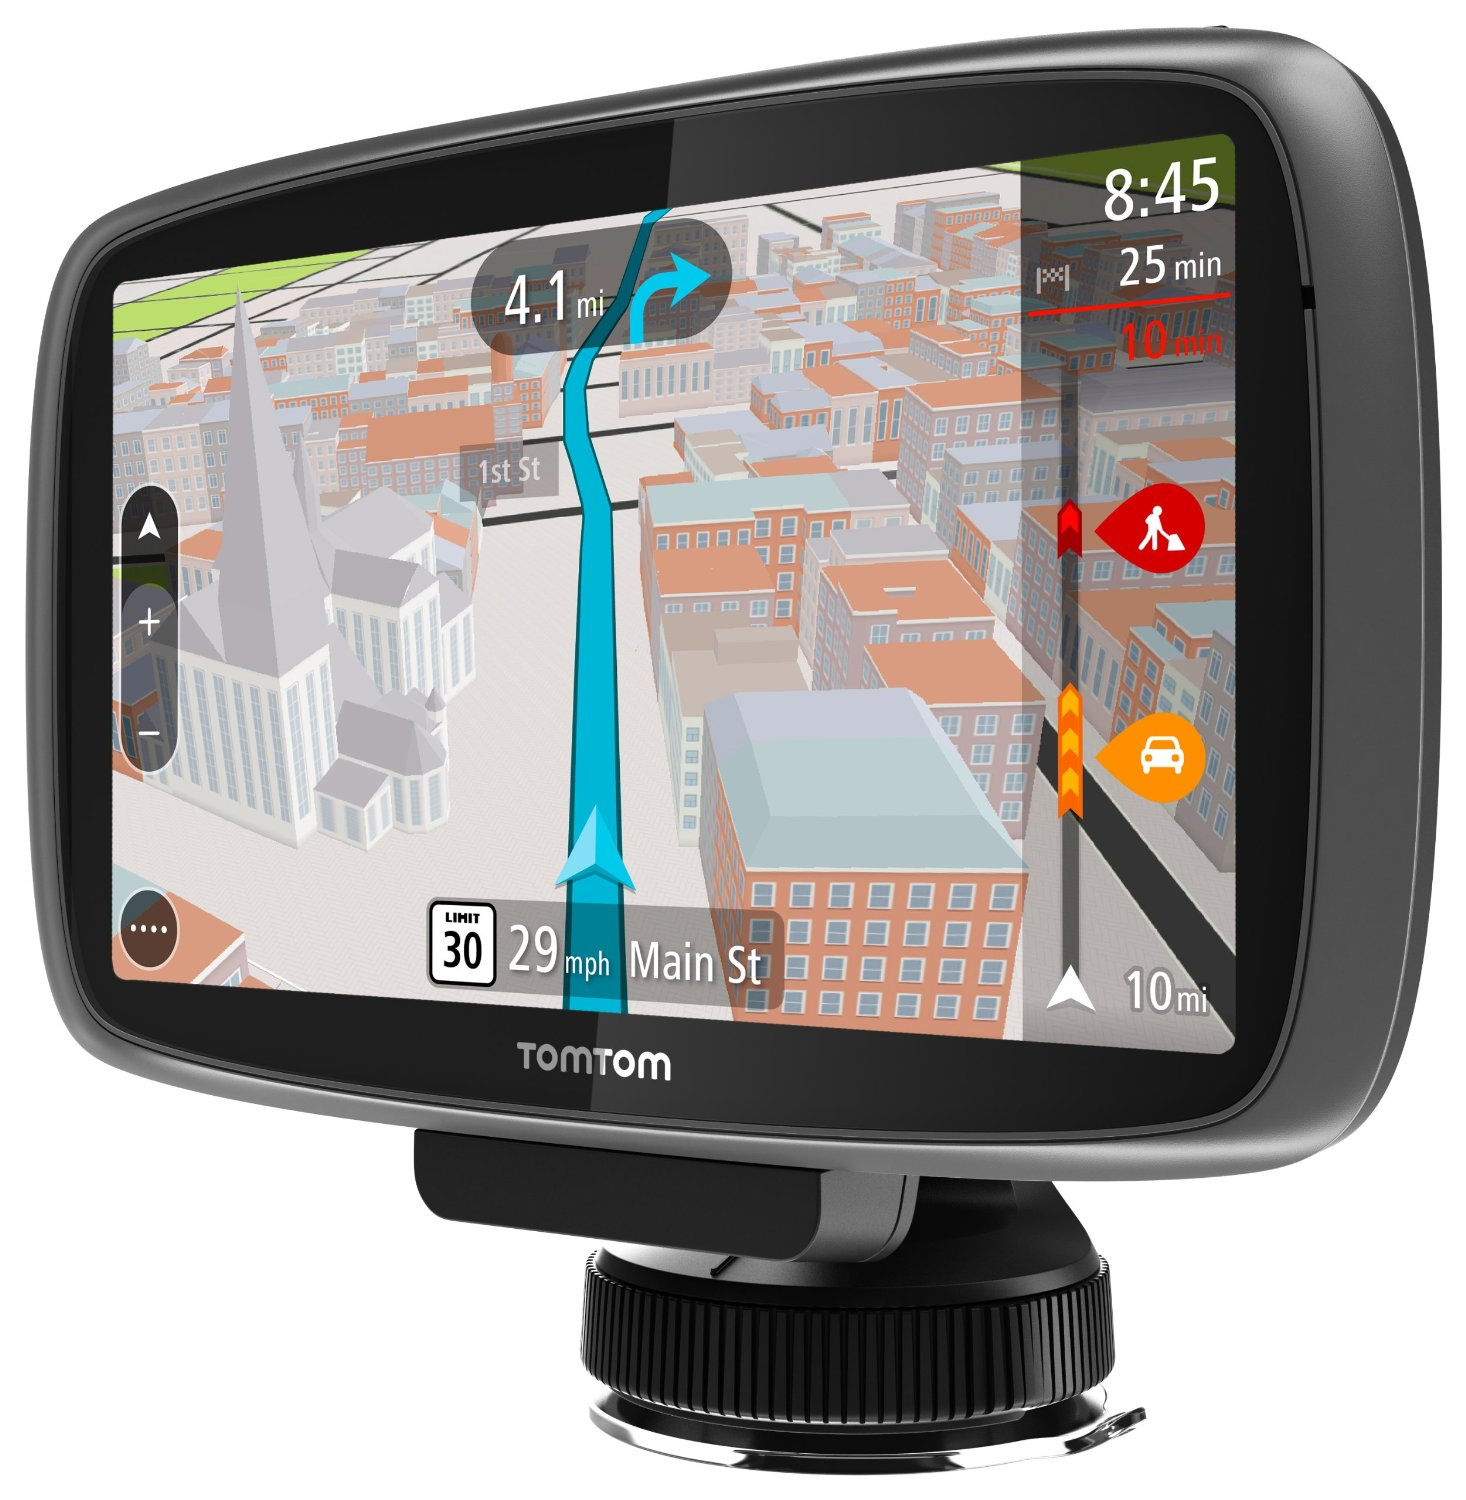 Image Result For Automotive Gps Review